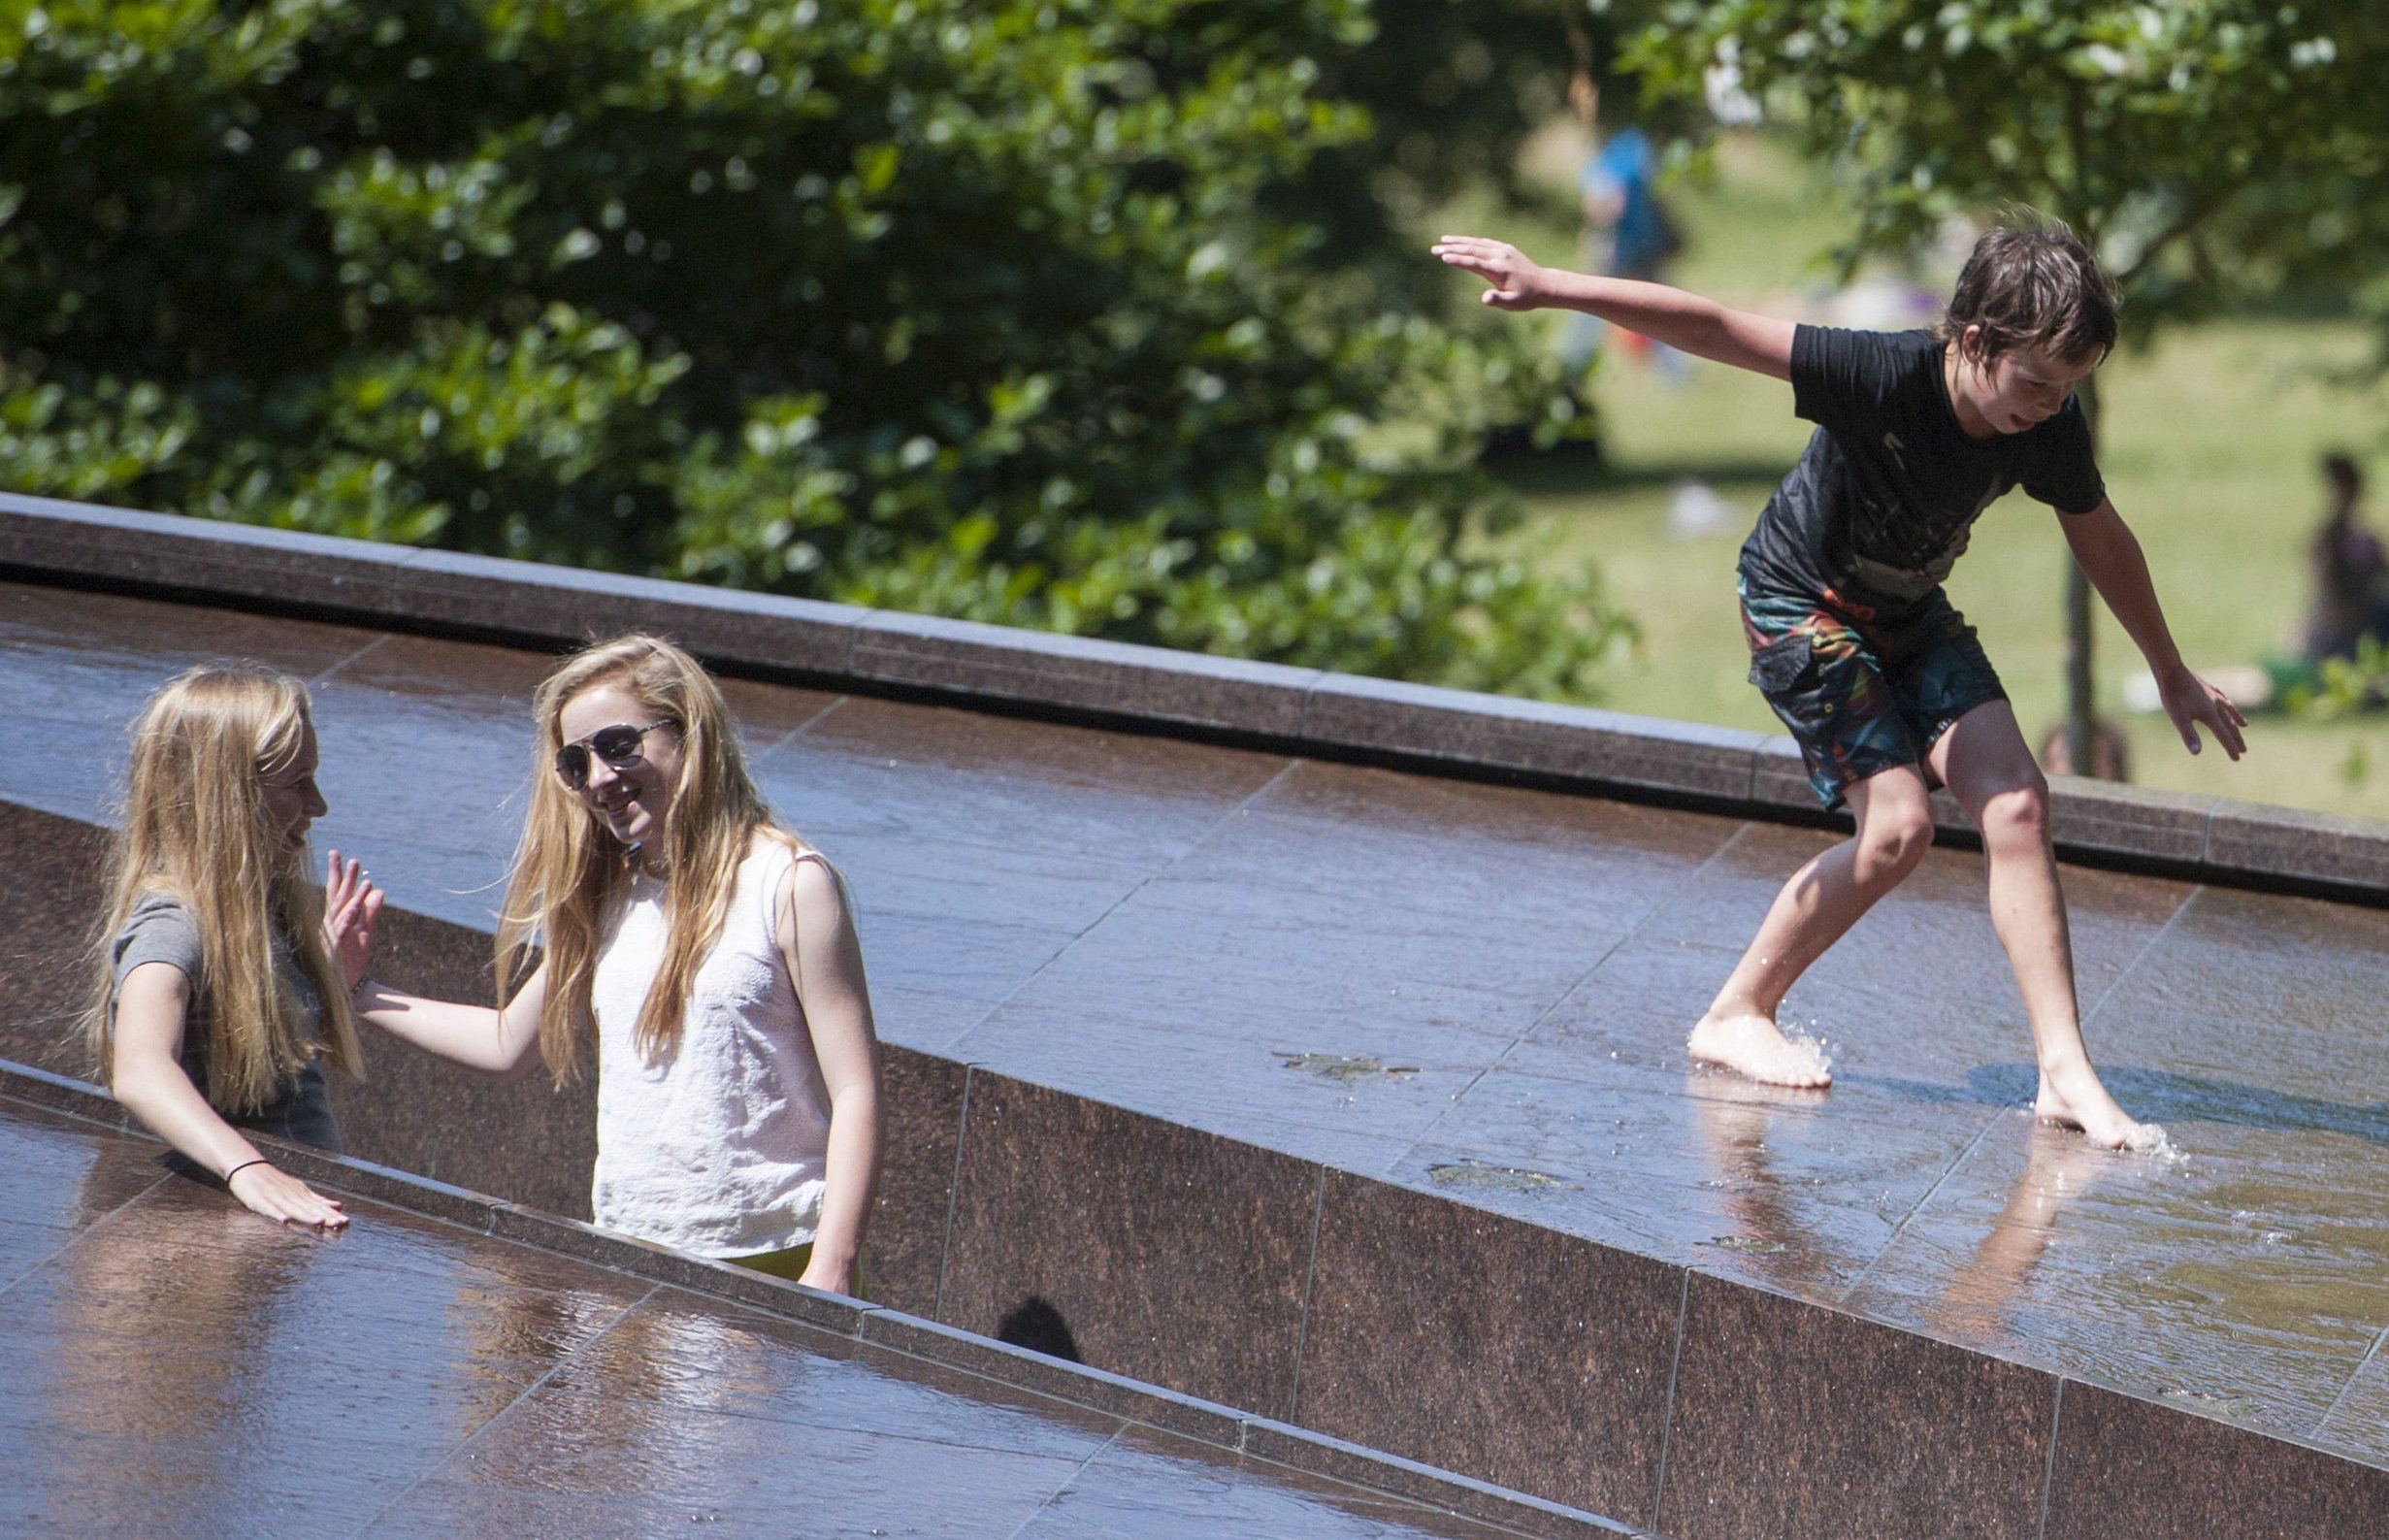 Mandatory Credit: Photo by Ray Tang/REX/Shutterstock (2627905e)nYoung boy sliding down Canada Memorial in St James ParknHot weather in London, Britain - 09 Jul 2013nn